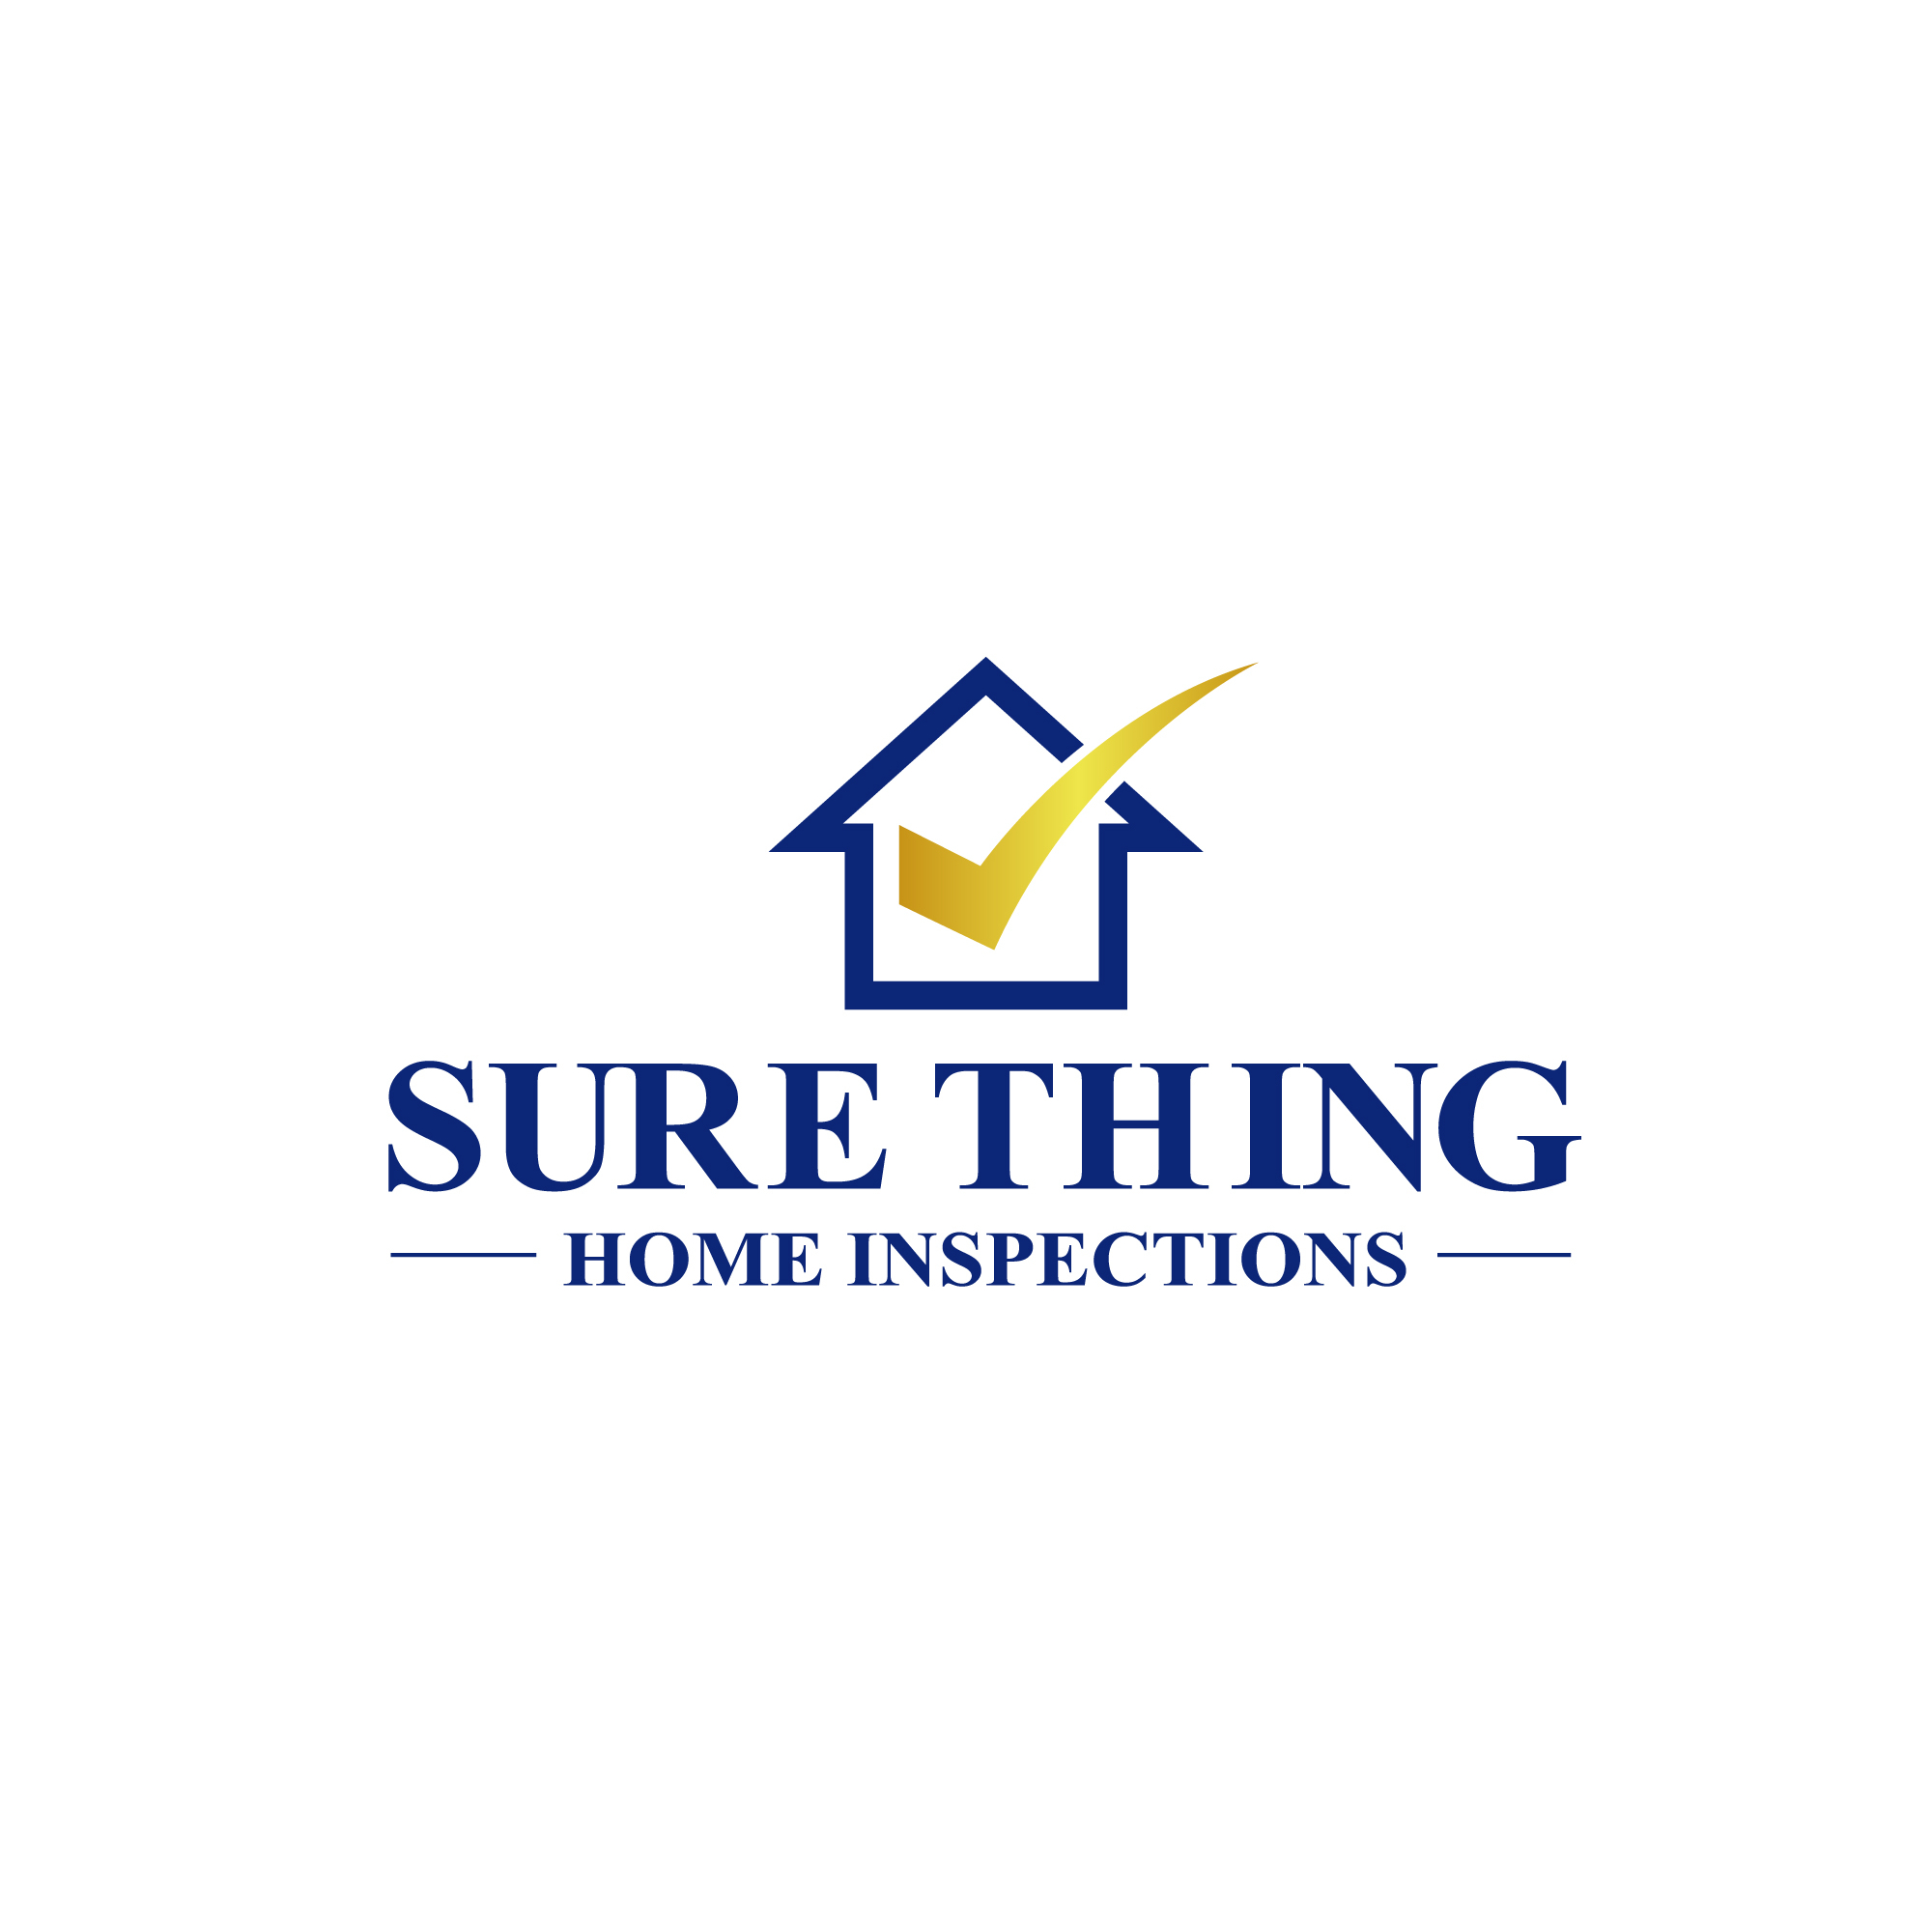 Sure Thing Home Inspections